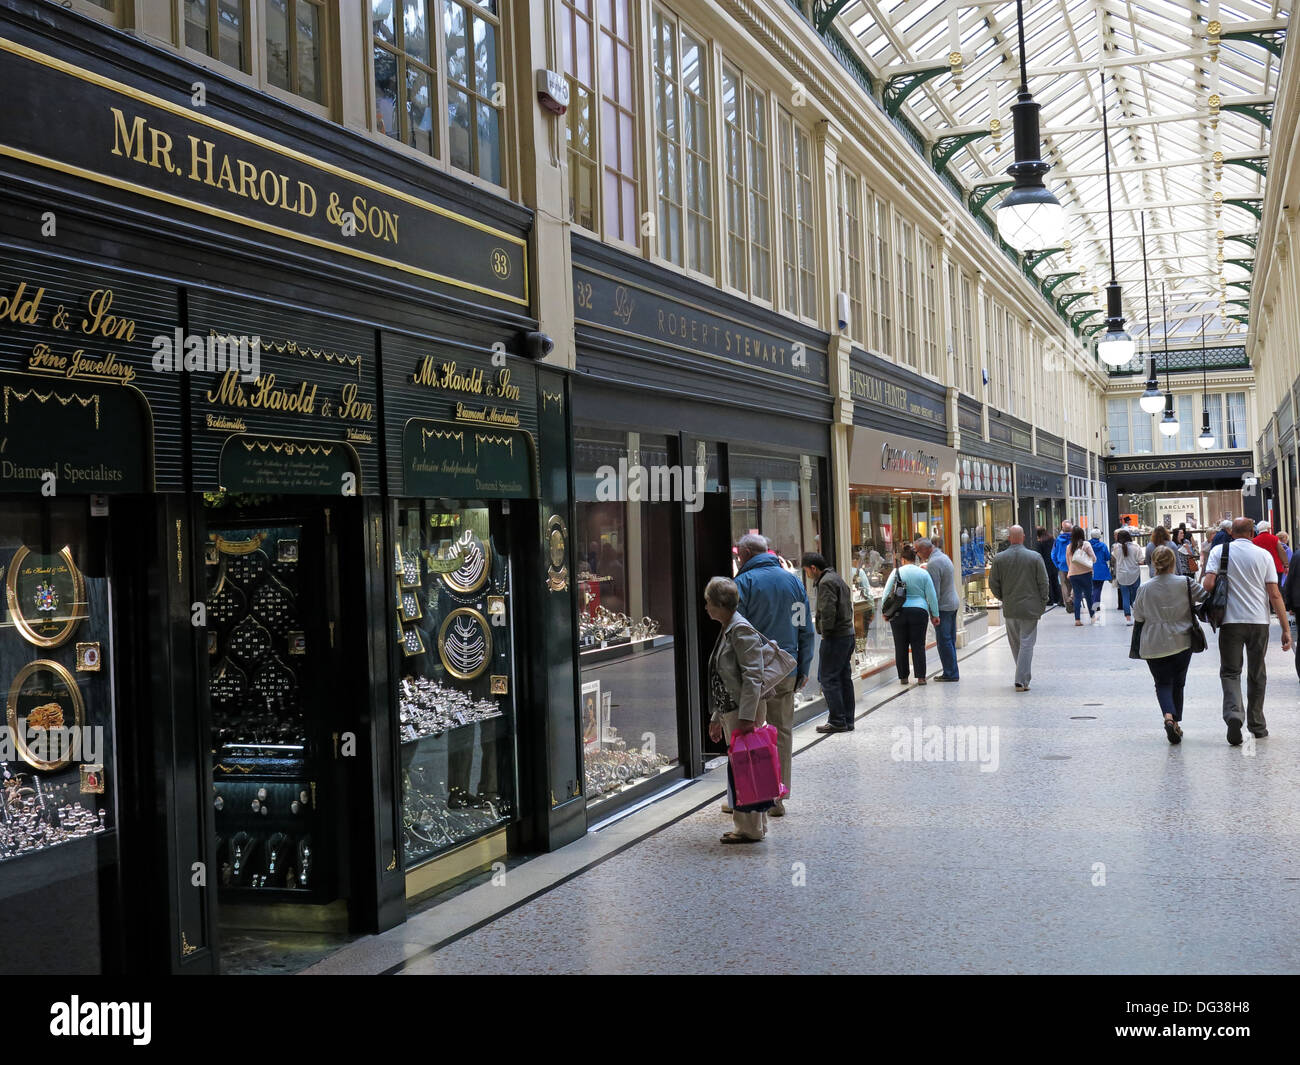 Mr Harold & Sons shop in the Argyll Arcade Victorian Glasgow shopping mall , Scotland, UK - Stock Image